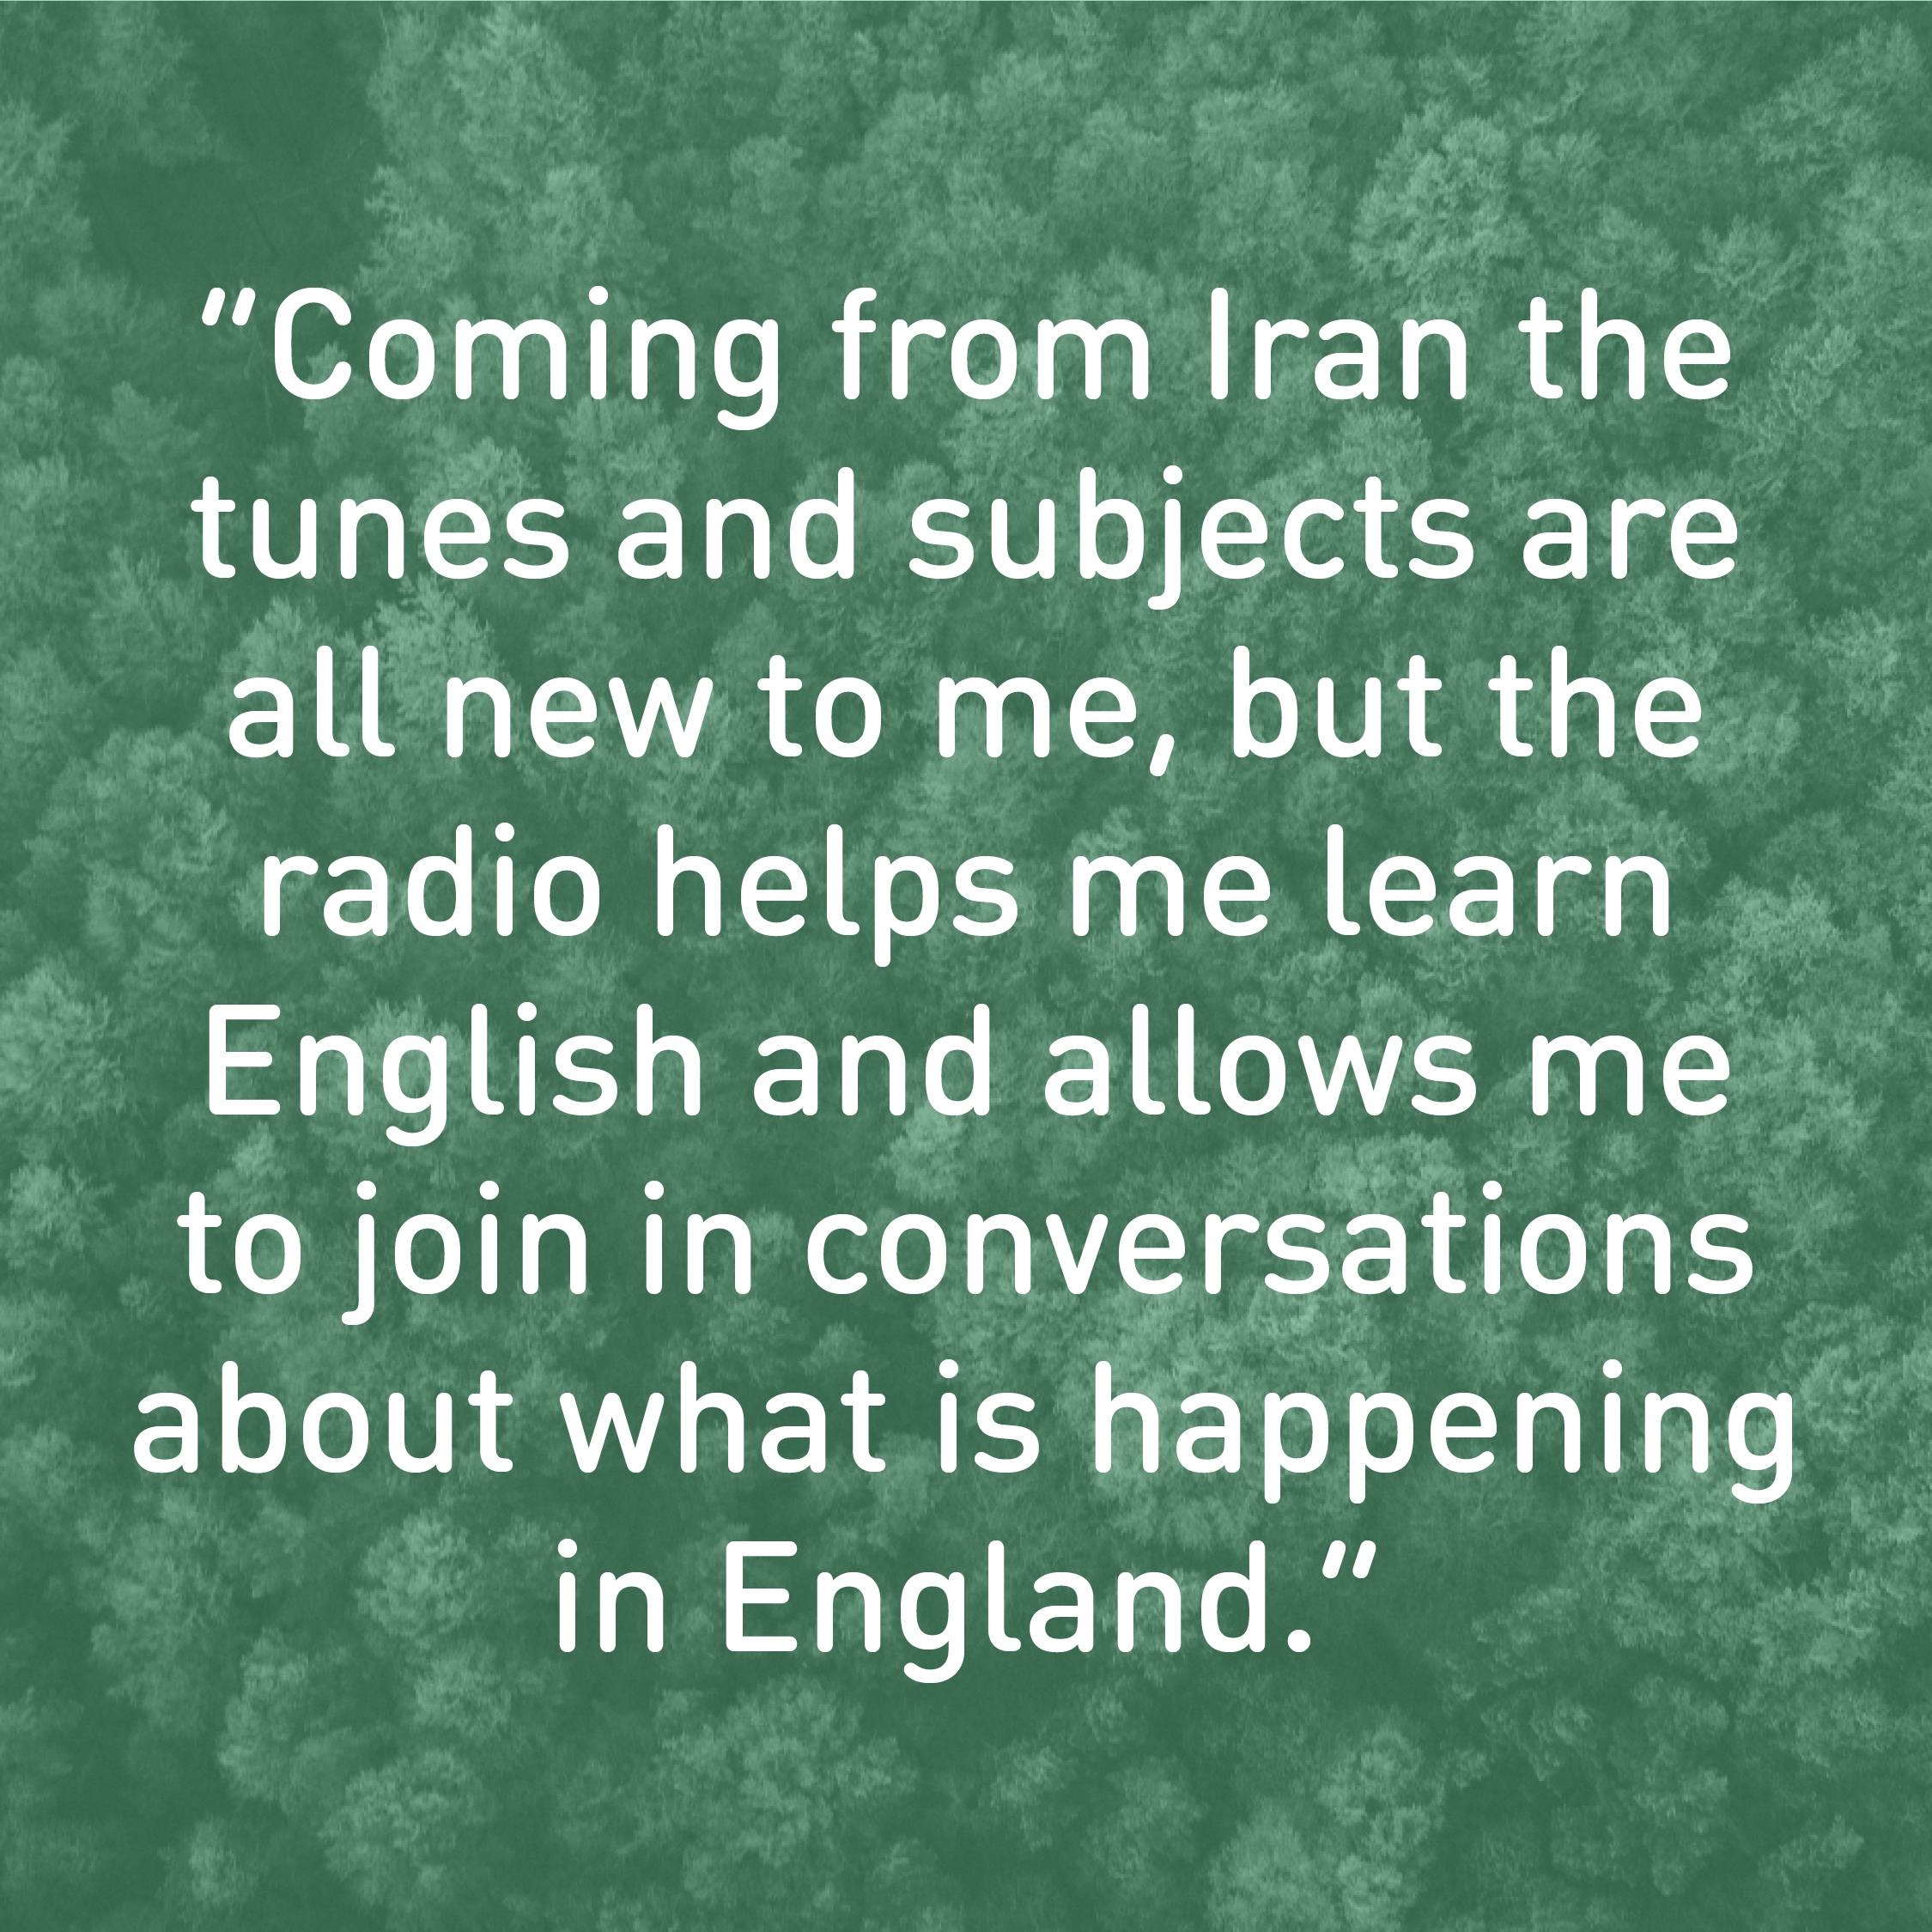 """Coming from Iran the tunes and topics are all new to me, but the radio helps me learn English and allows me to join in conversations."""